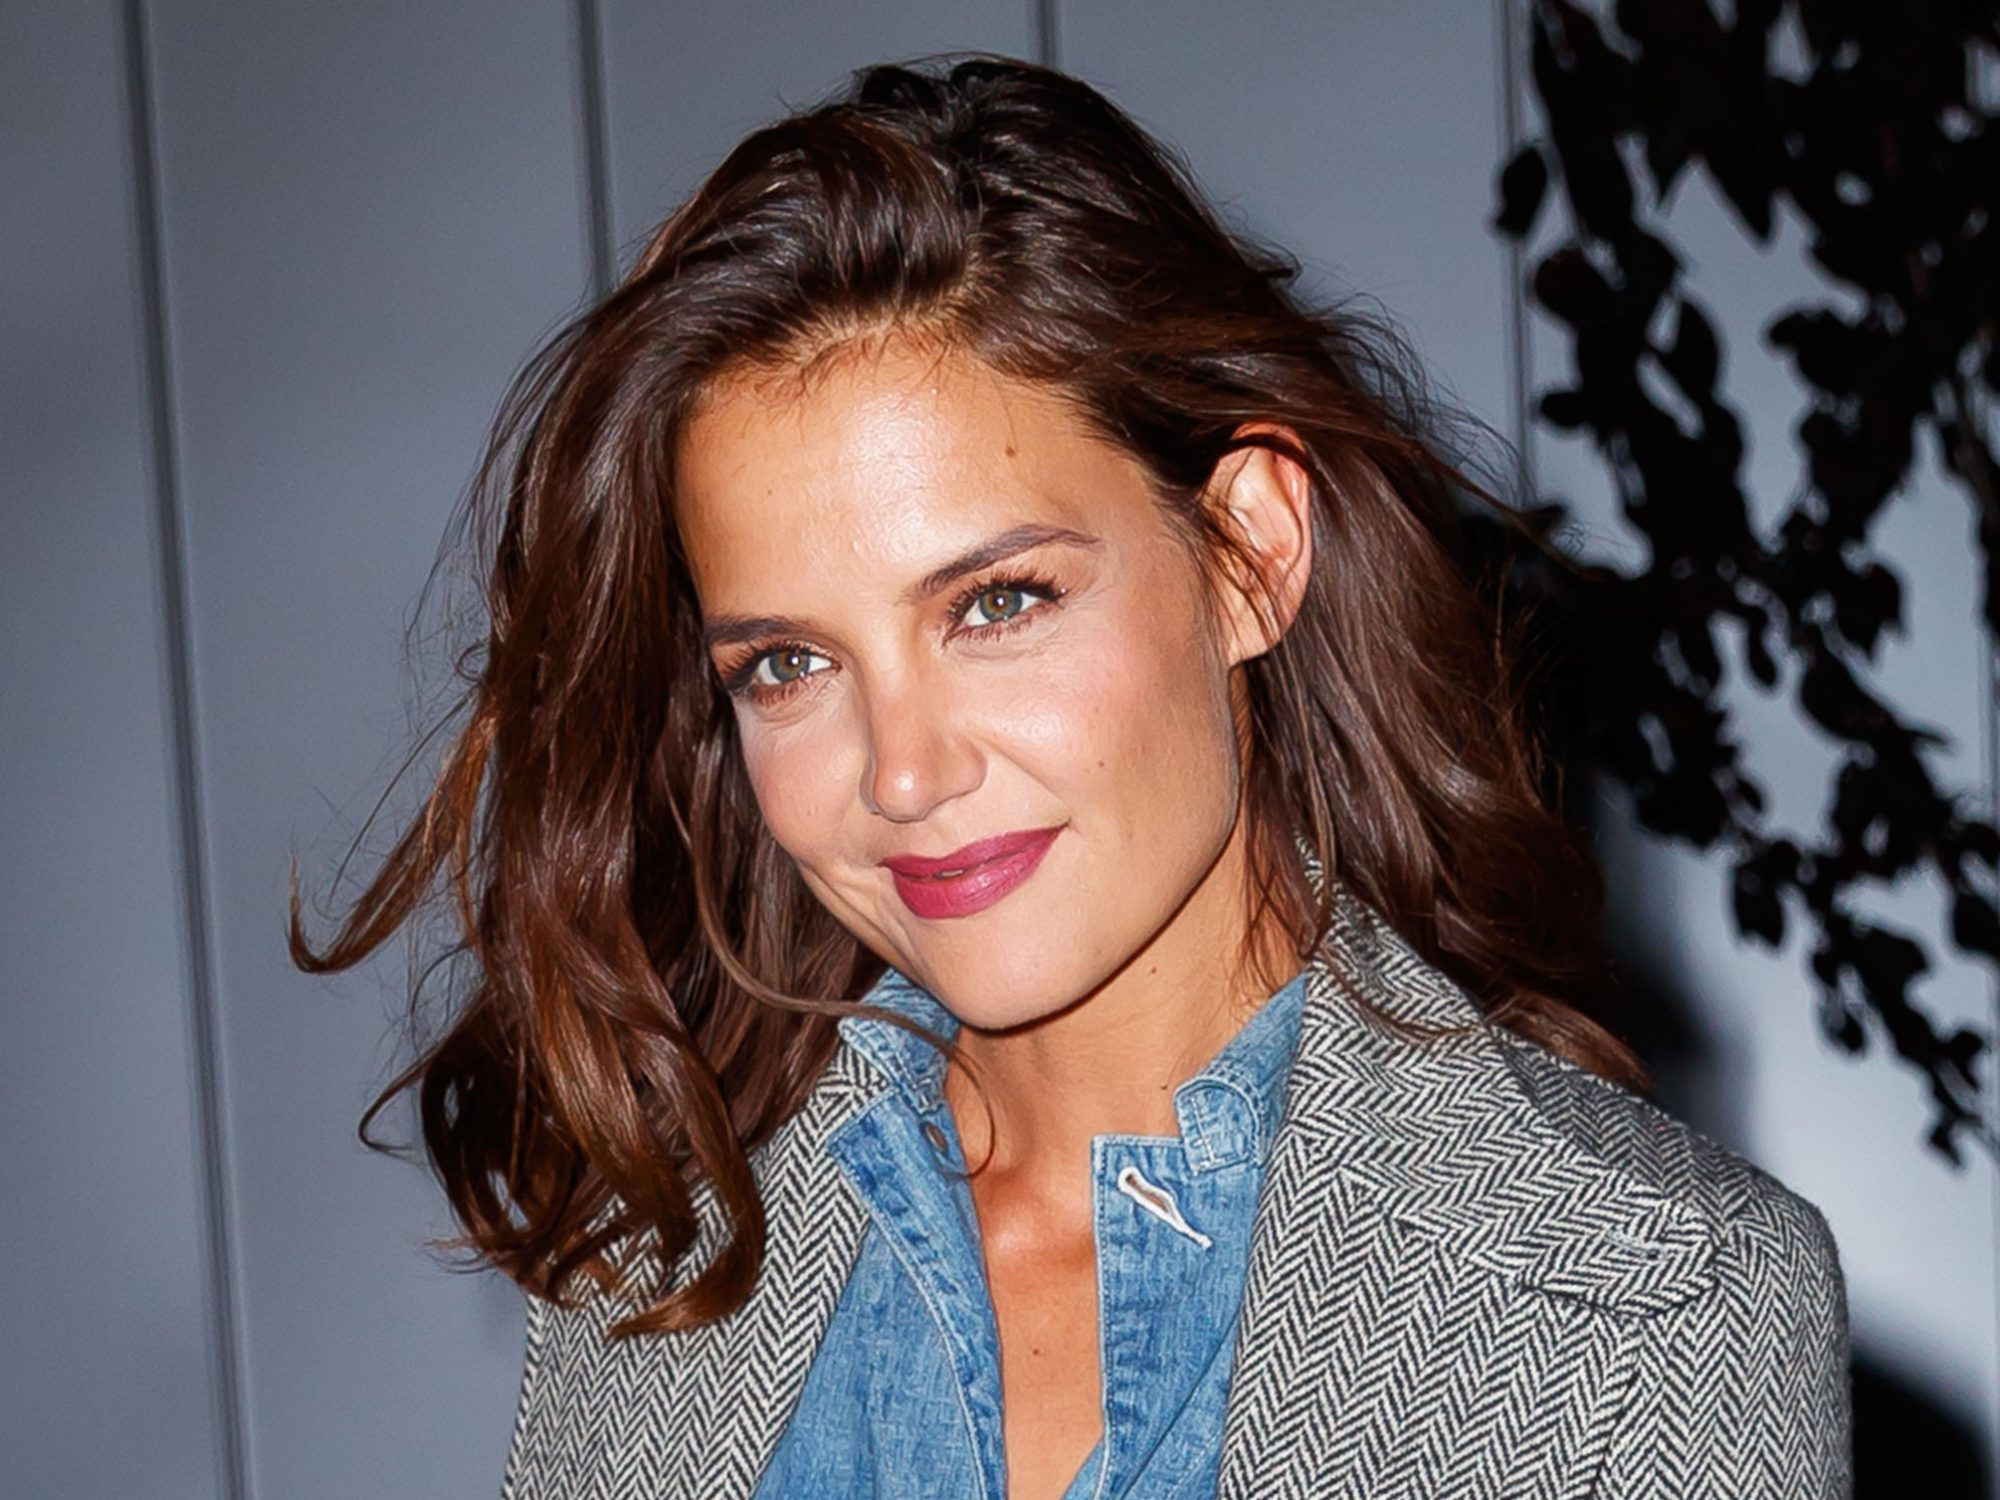 Katie Holmes Chops Off Her Hair into a Pixie Cut Again ...